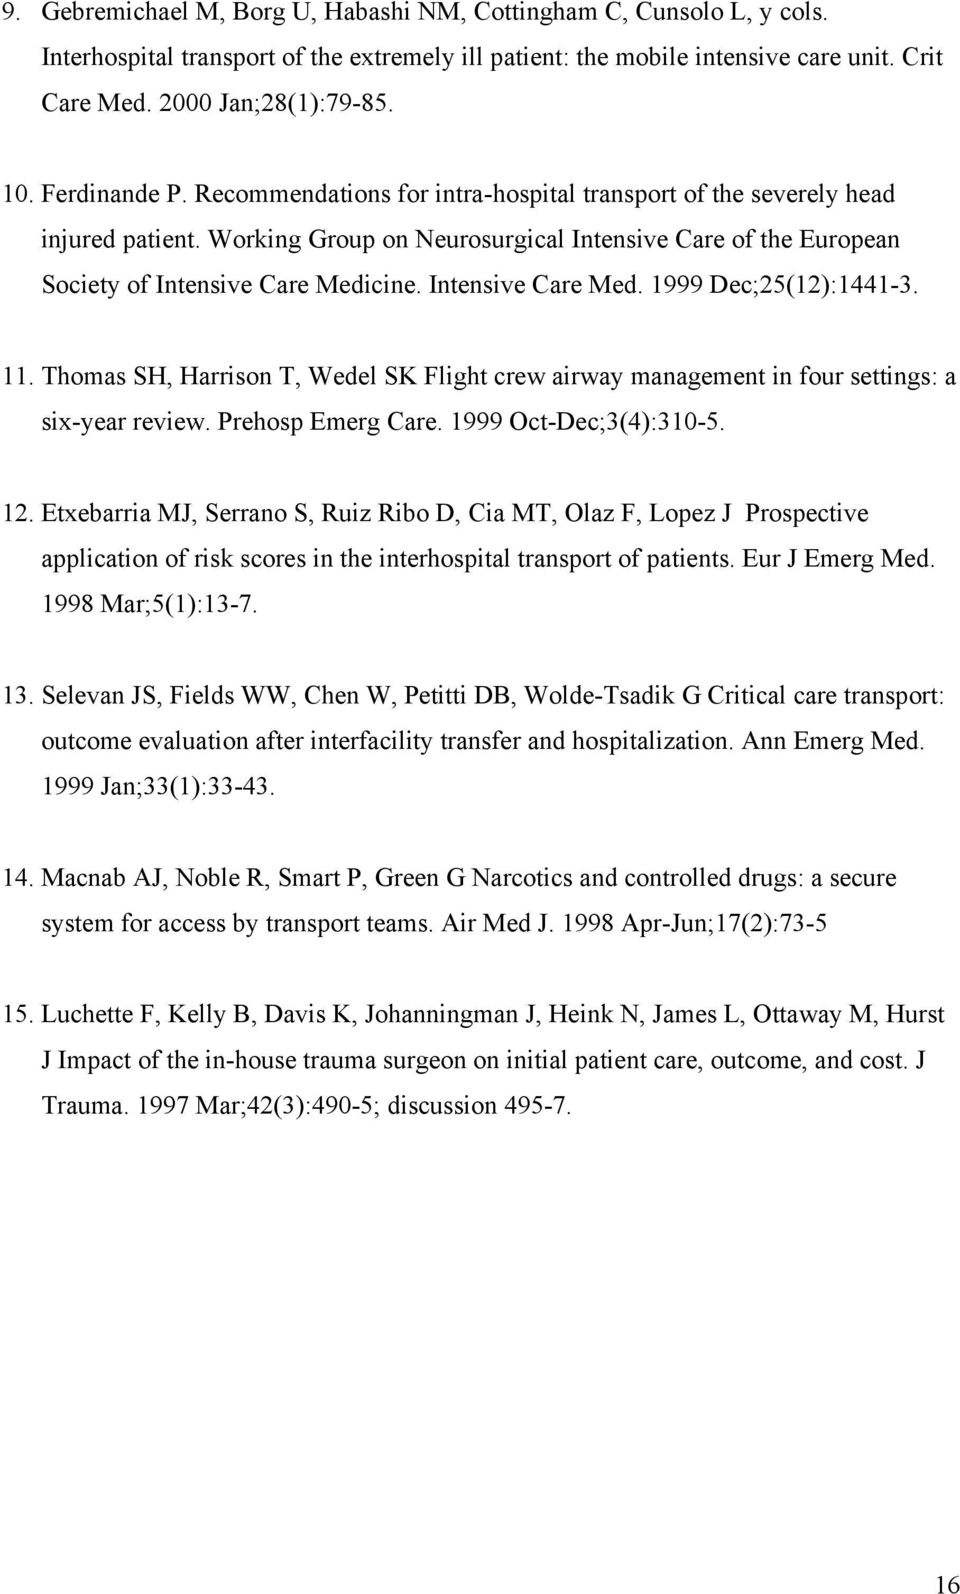 Intensive Care Med. 1999 Dec;25(12):1441-3. 11. Thomas SH, Harrison T, Wedel SK Flight crew airway management in four settings: a six-year review. Prehosp Emerg Care. 1999 Oct-Dec;3(4):310-5. 12.